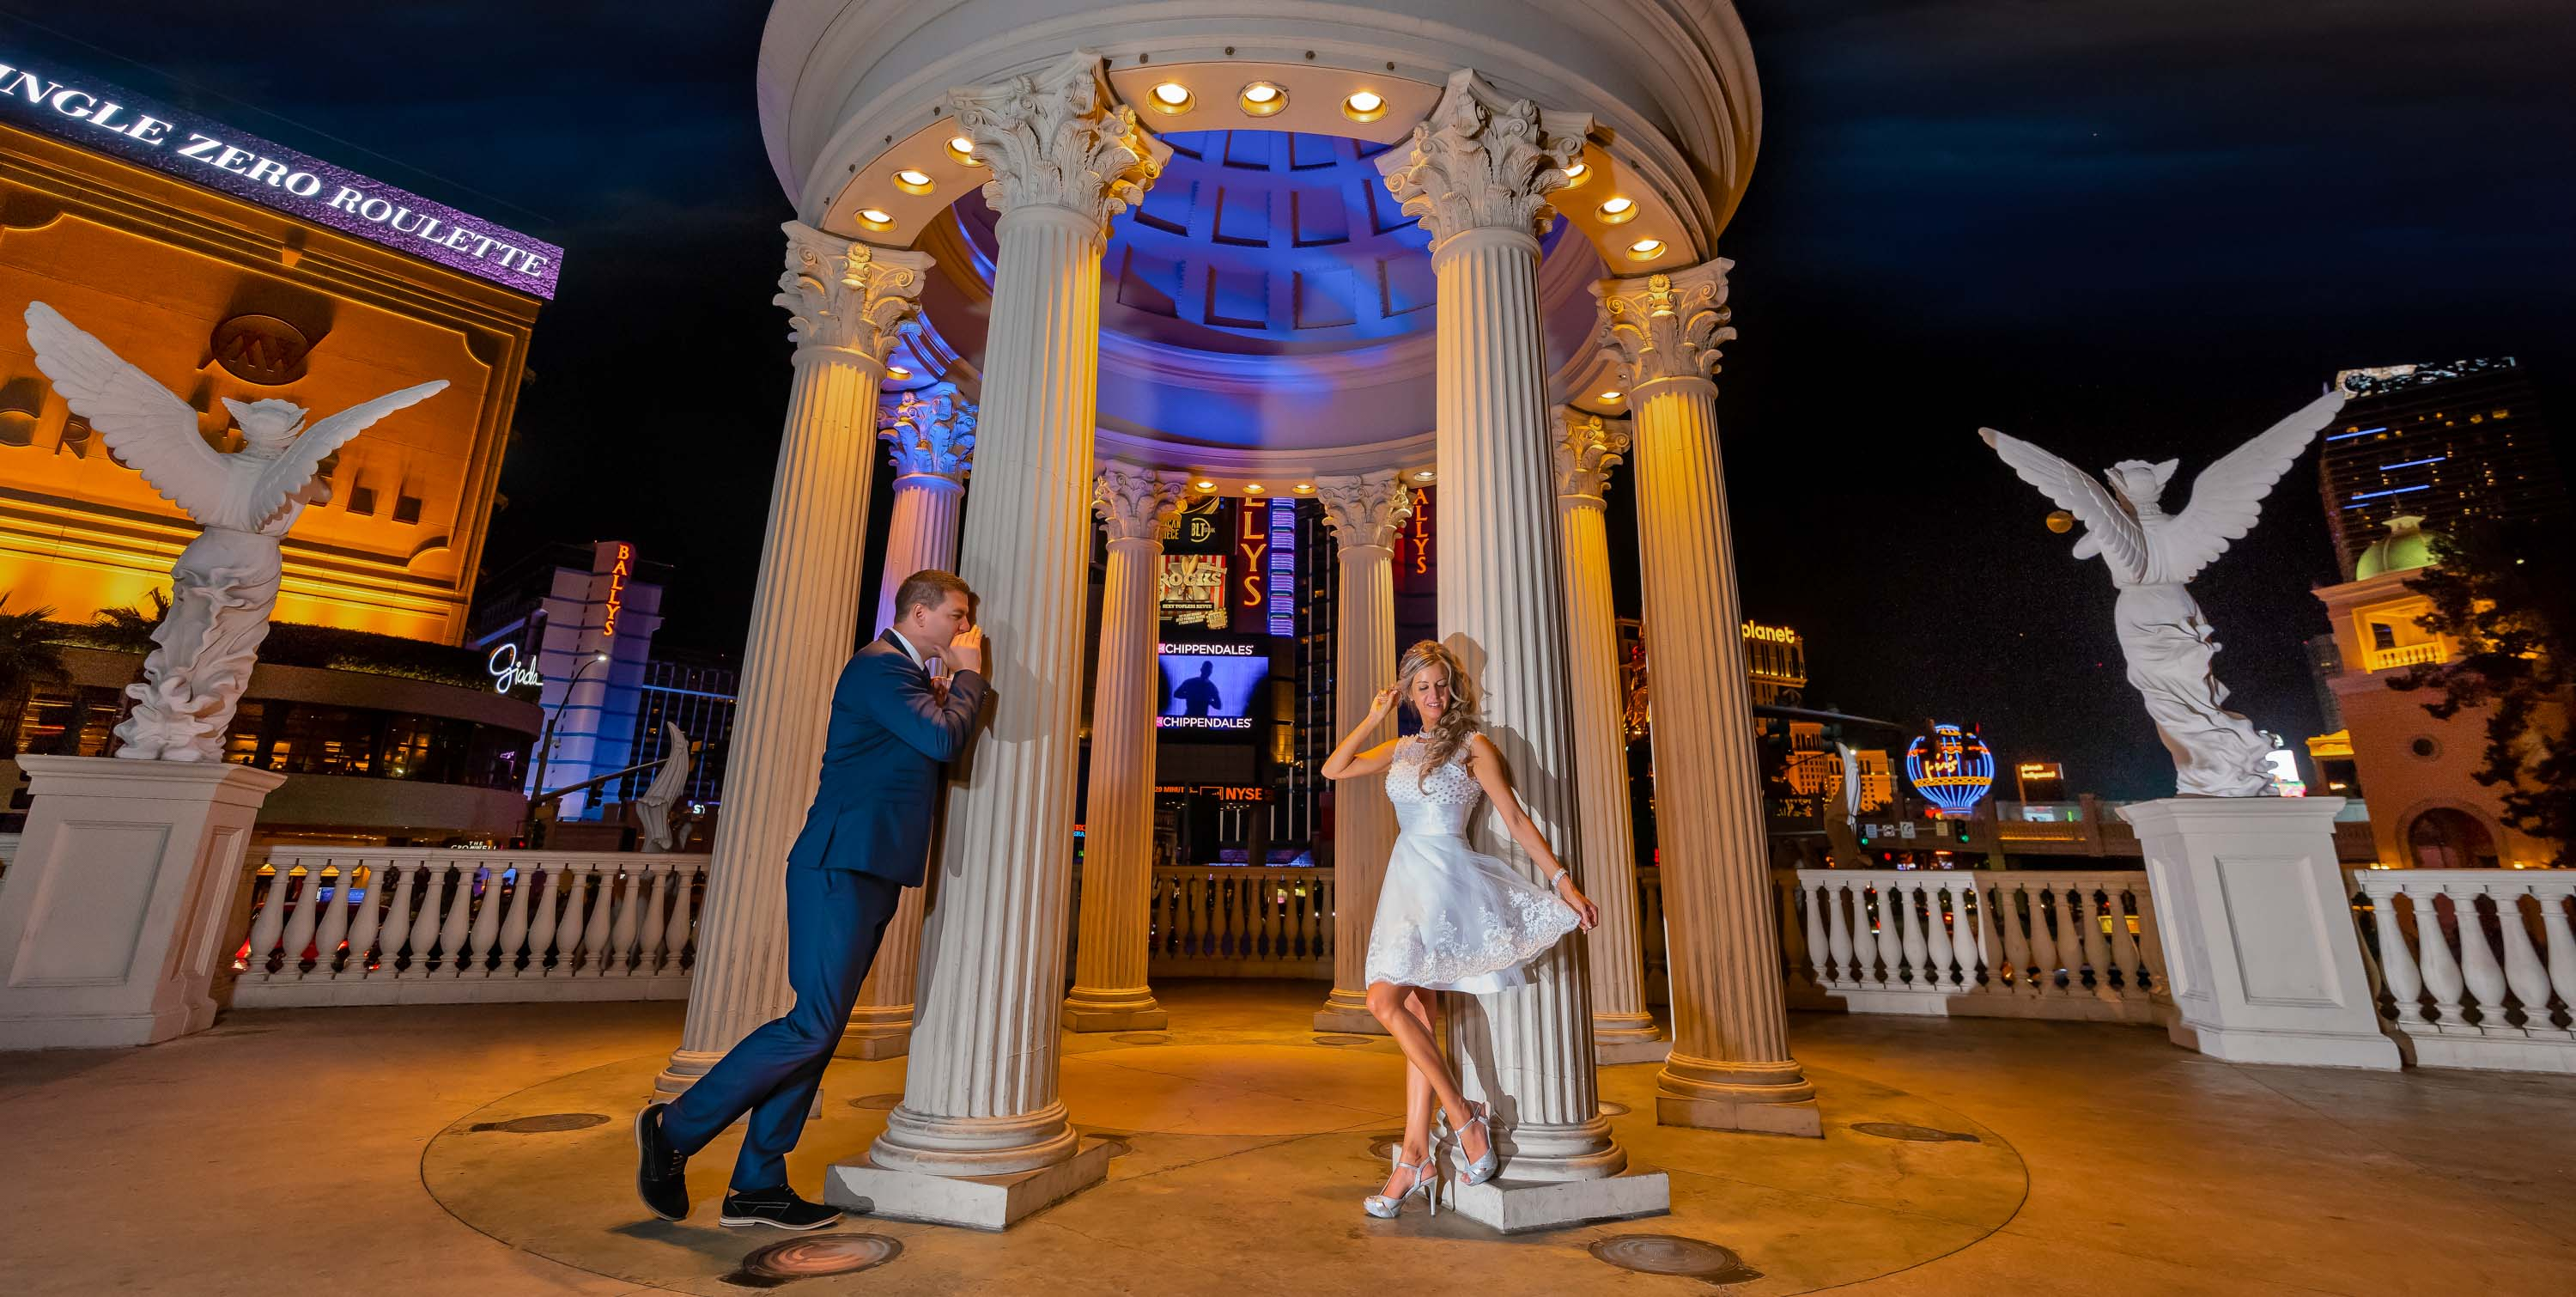 Wedding photographer | Las Vegas Strip elopements weddings